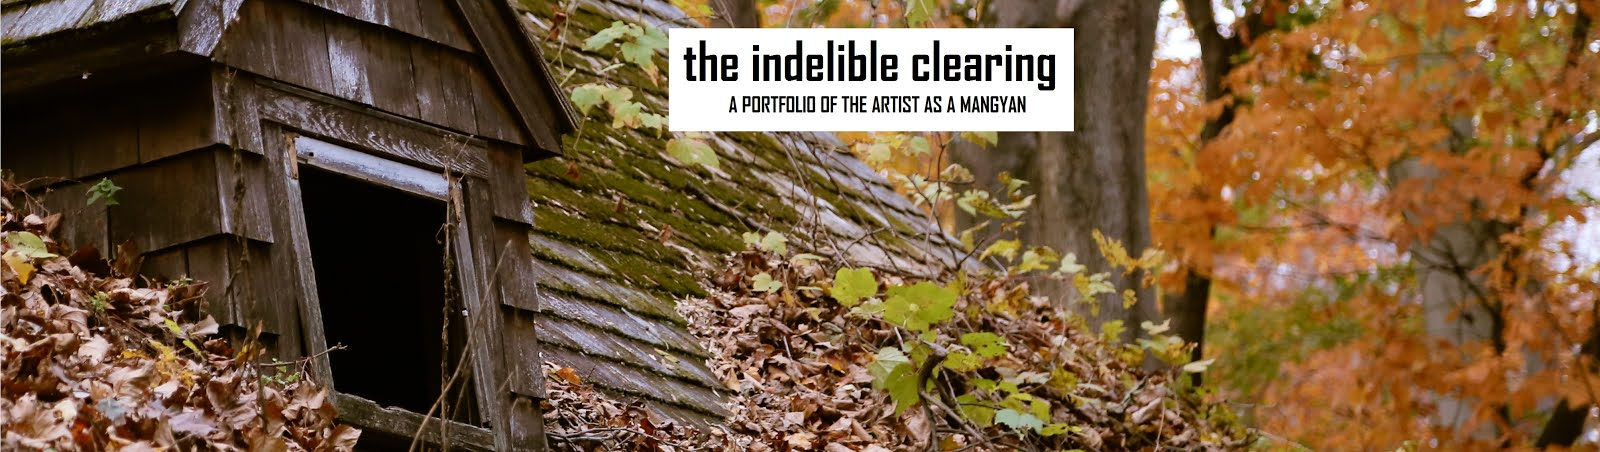 THE INDELIBLE CLEARING